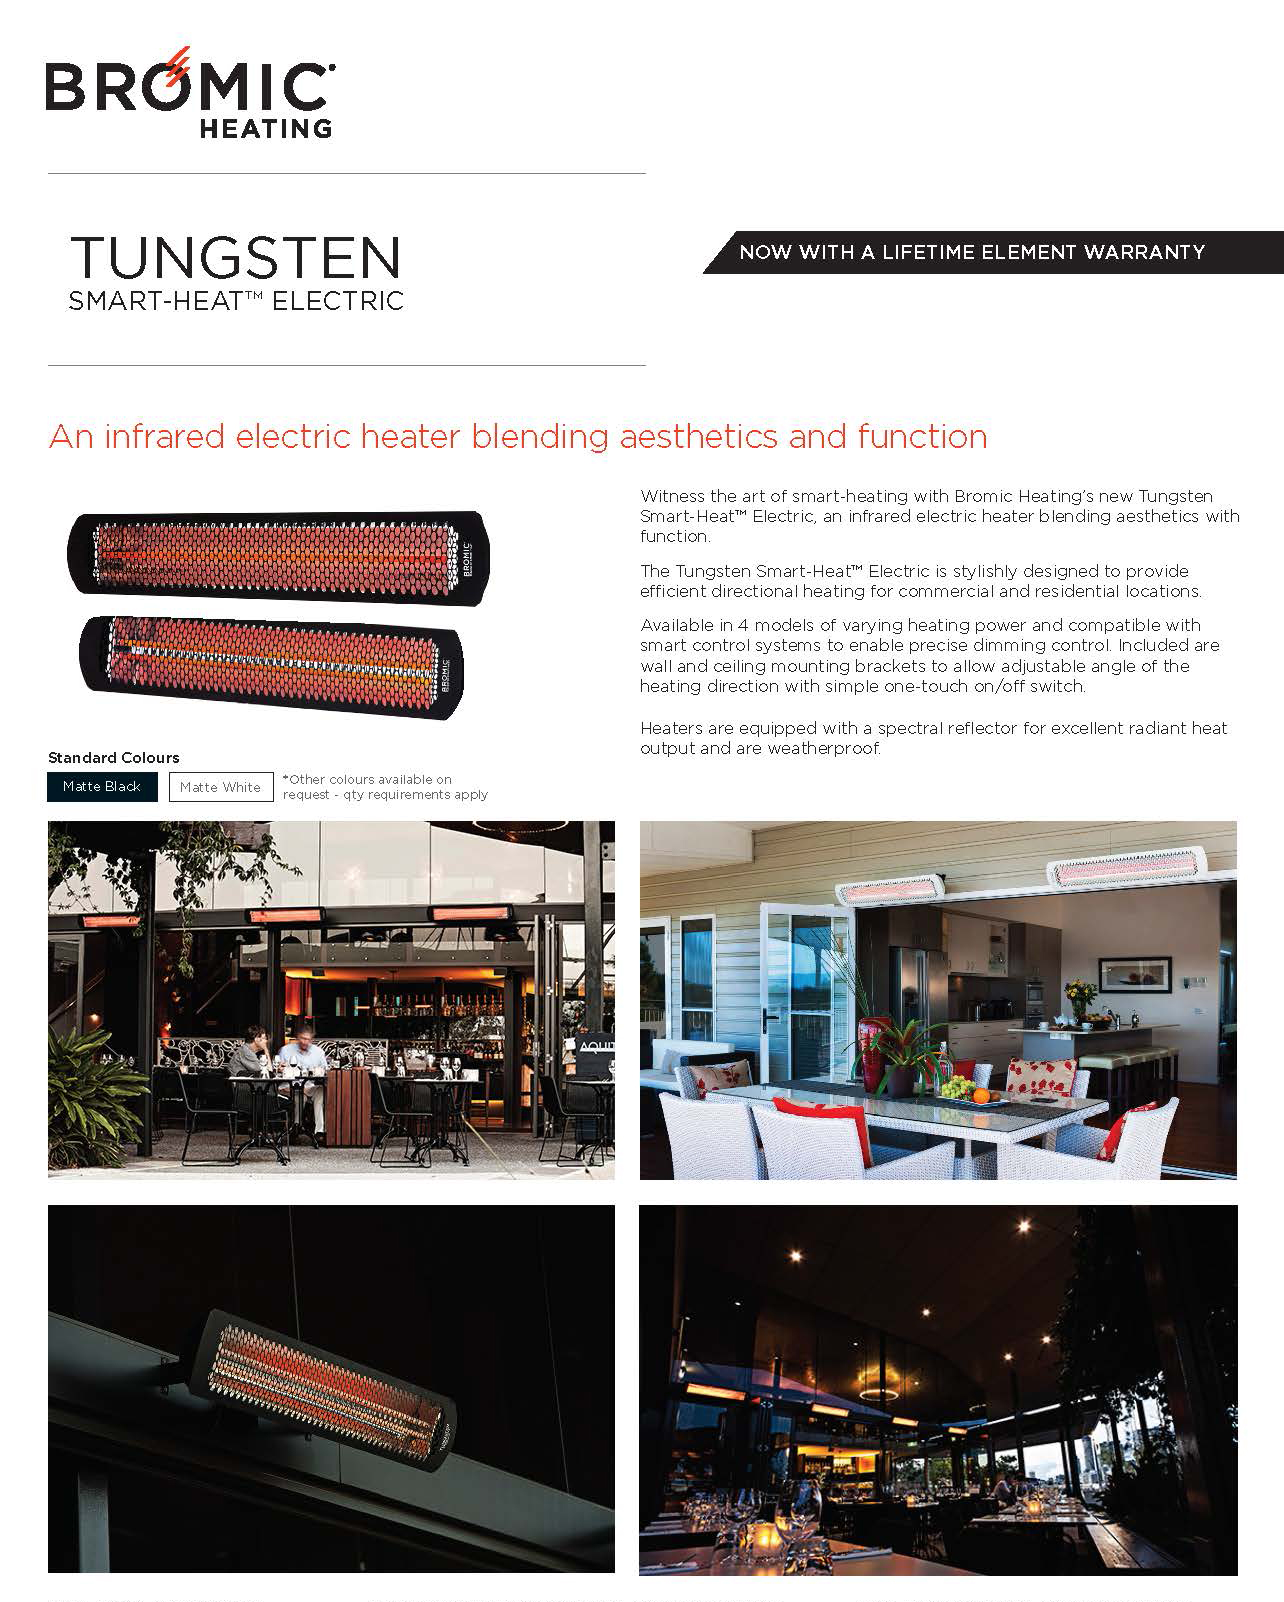 tungsten-electric-1.jpg